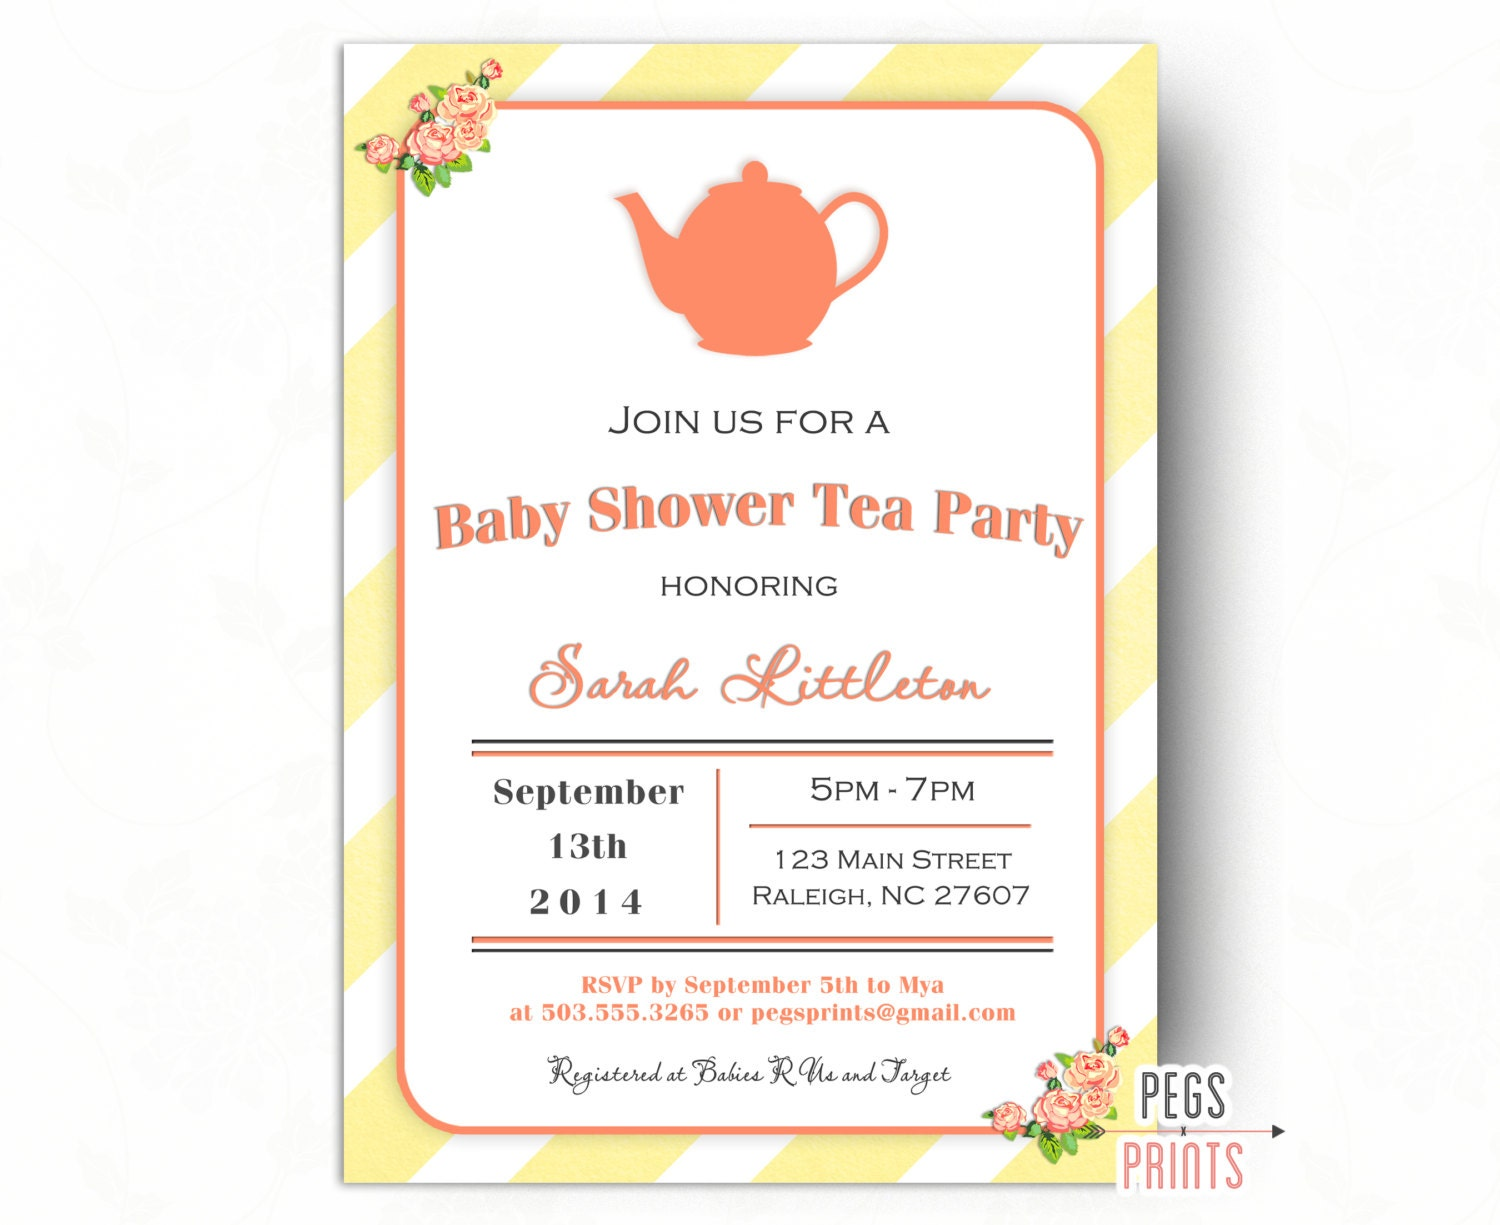 gender neutral baby shower tea party invitation printable